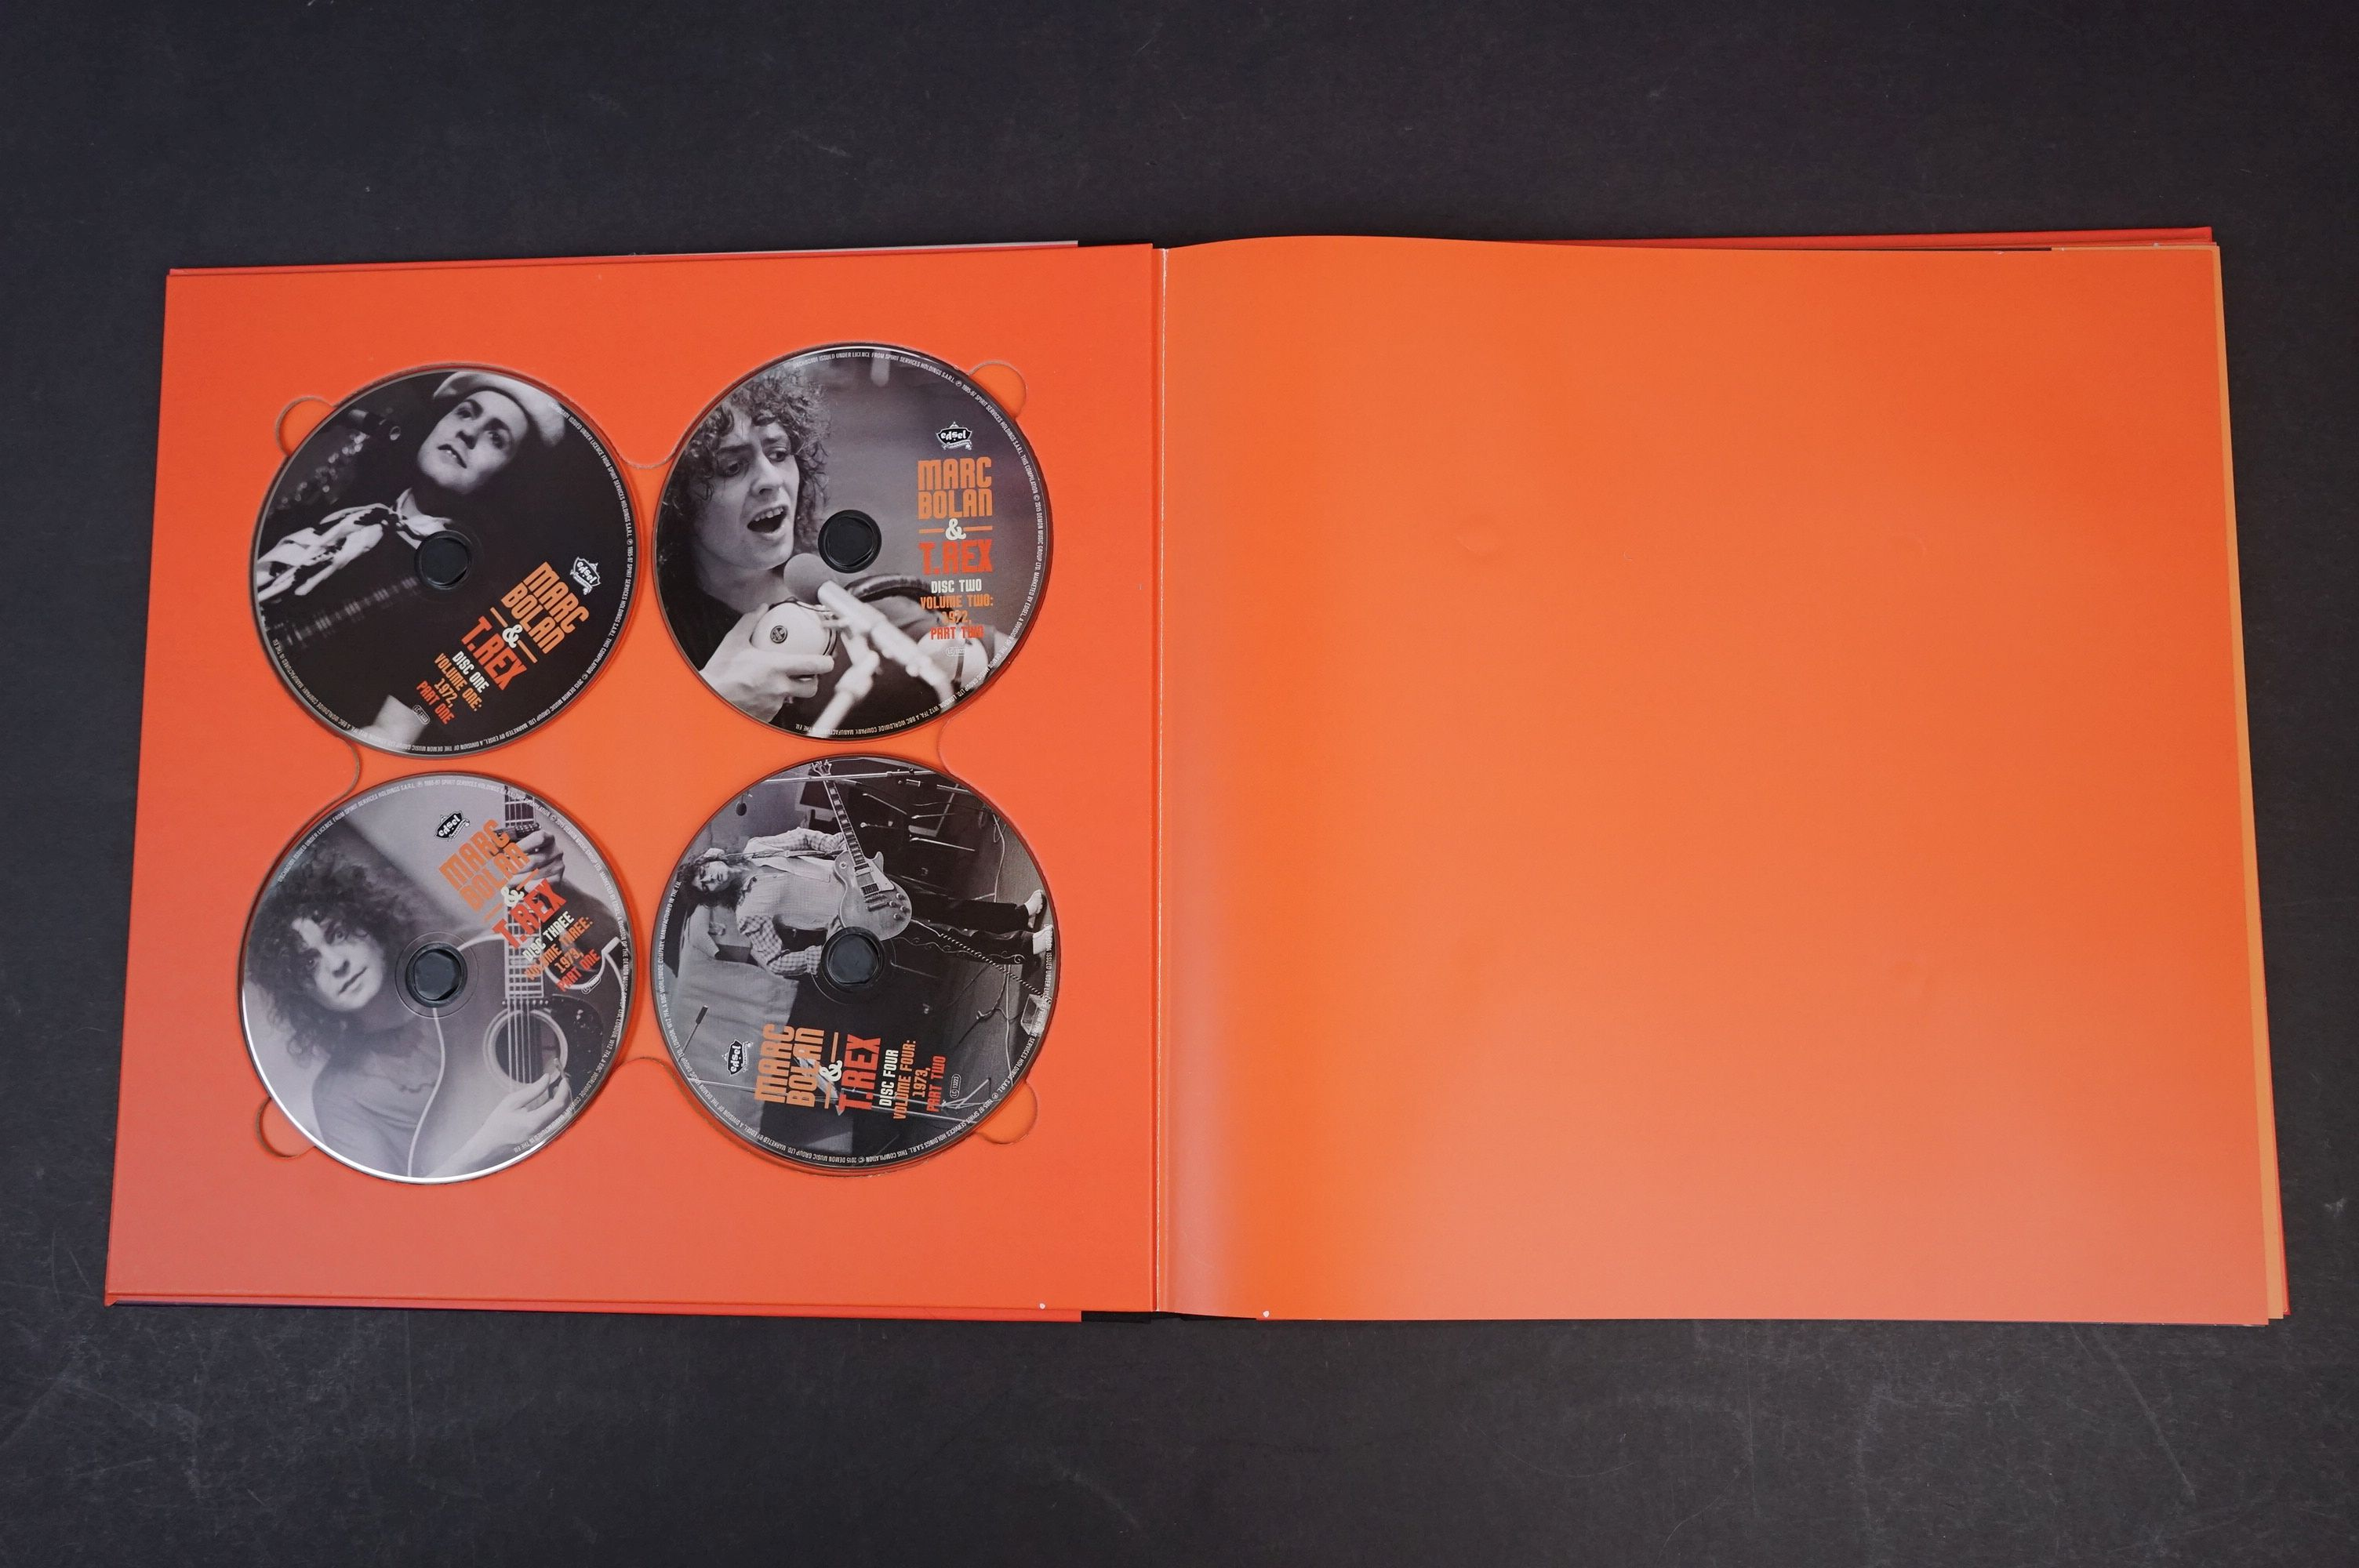 CD - Marc Bolan & T Rex Unchained Home Recordings & Studio Outtakes 8 CD Set UNCHBOX01 ex - Image 2 of 6